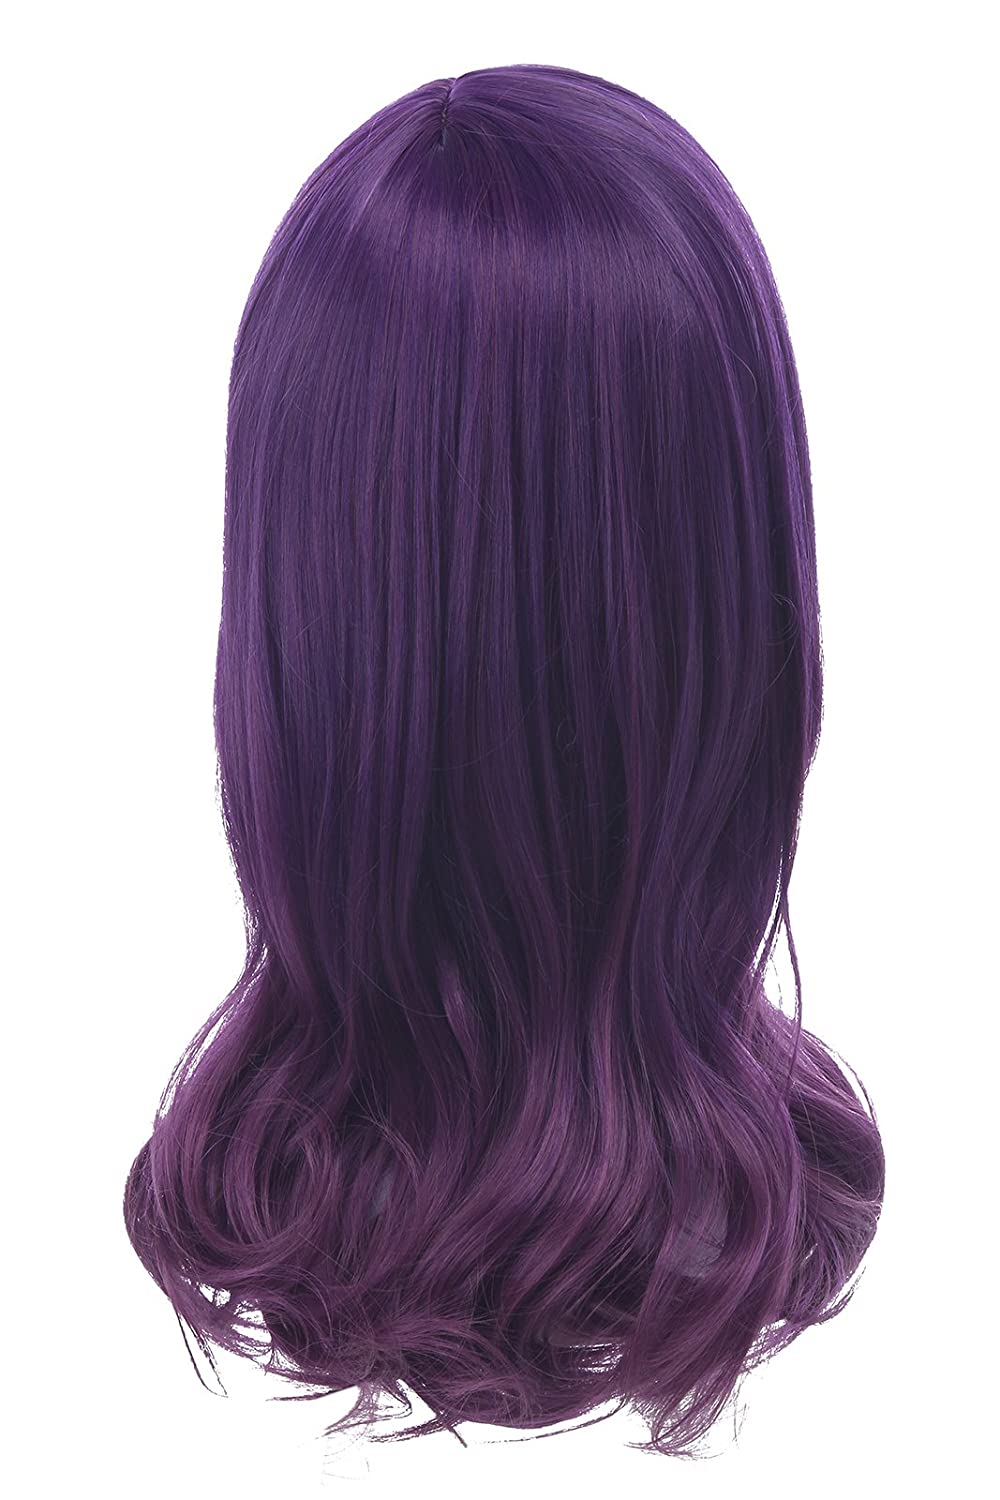 Amazon.com: Nuoqi Anime Sweet Girl Serinuma Kae Purple Curly Wavy Hairs Cosplay Wig ML240: Clothing